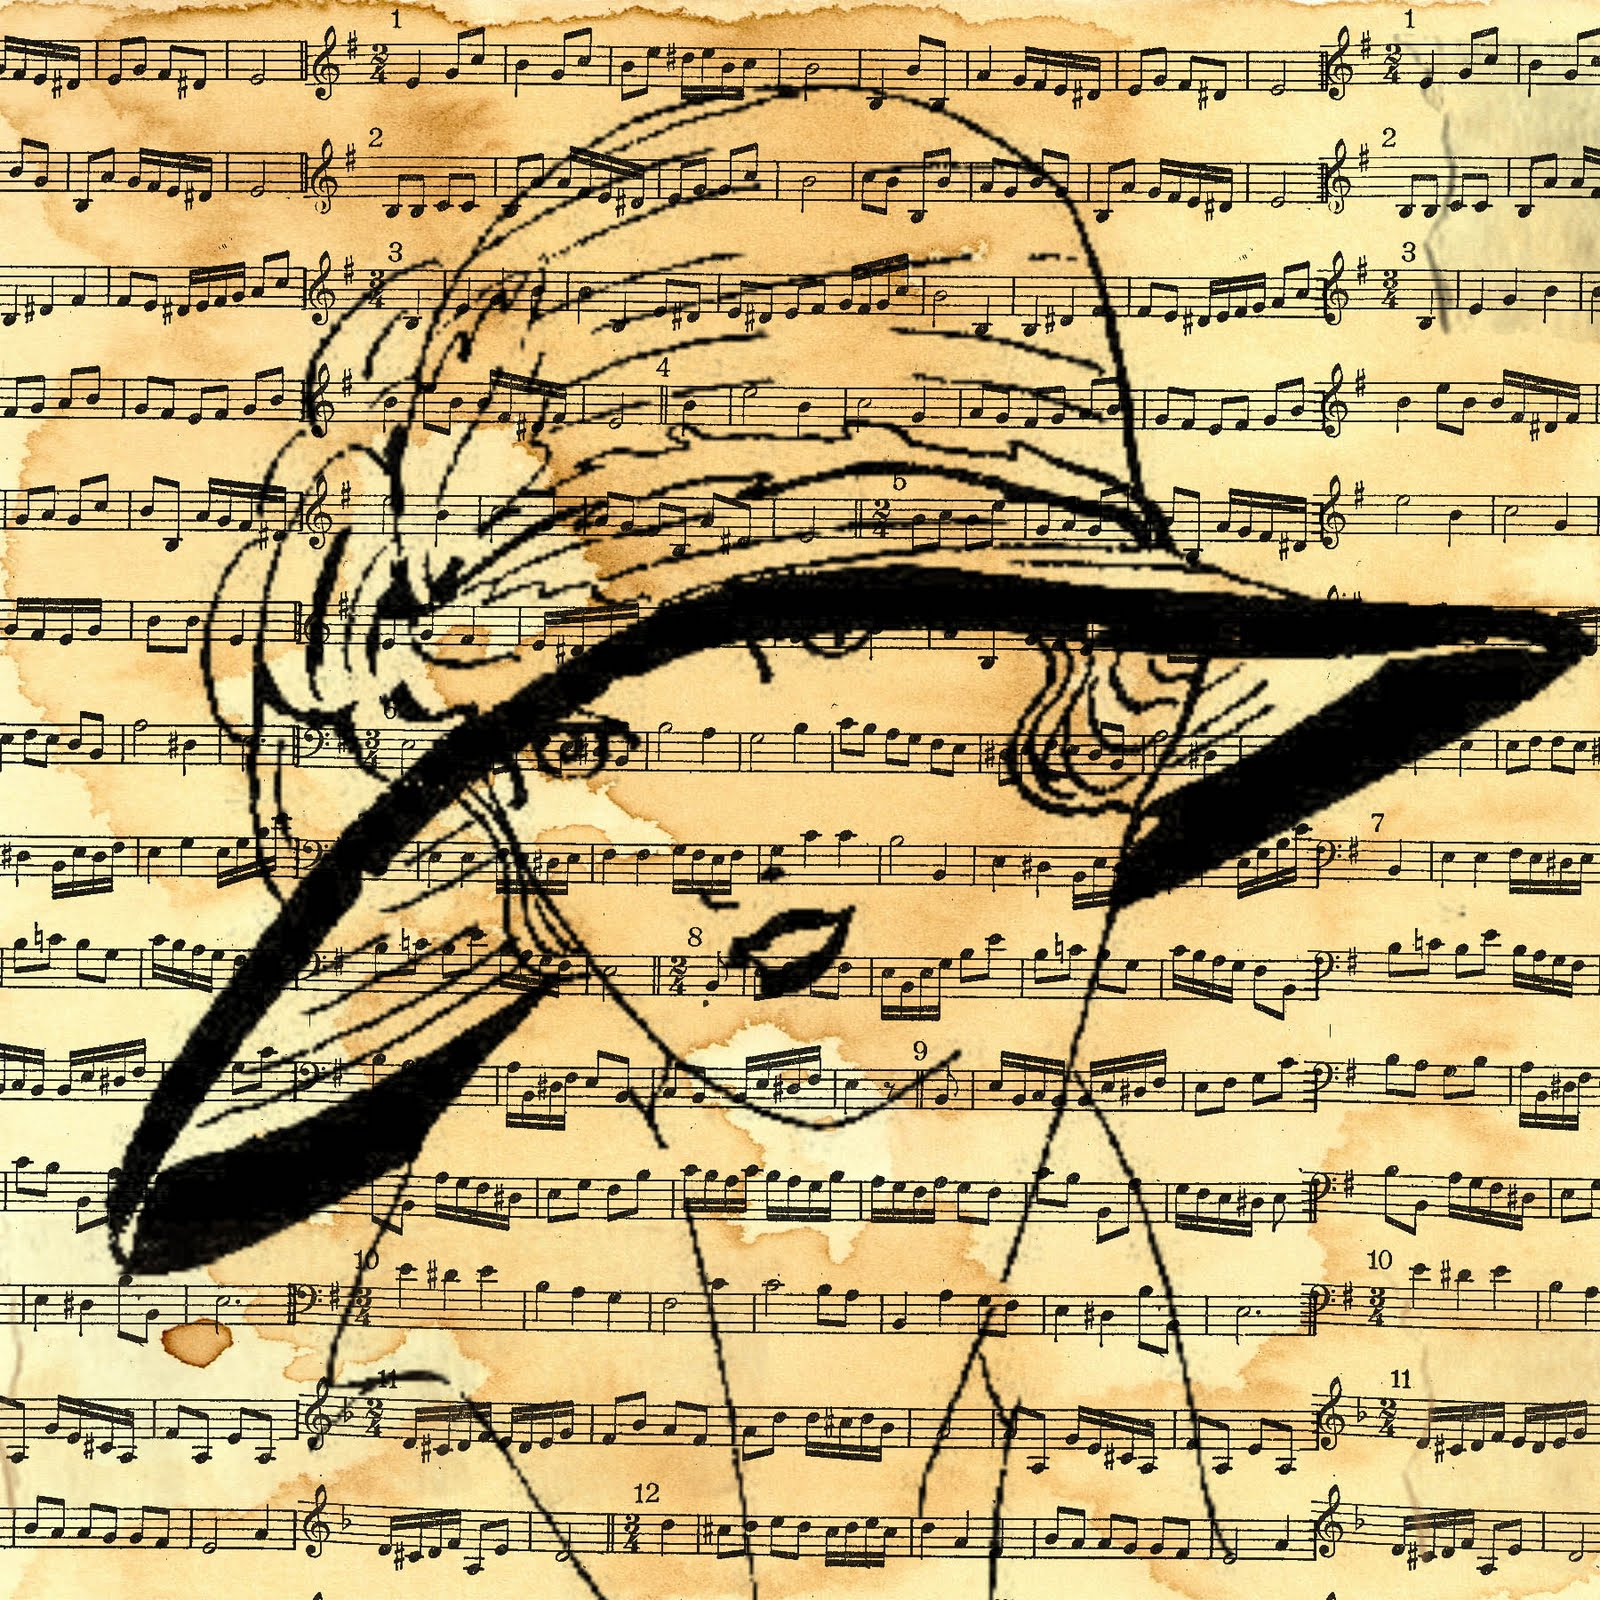 Drawn musician twitter backgrounds Art Becuo FREE Vintage Keywords